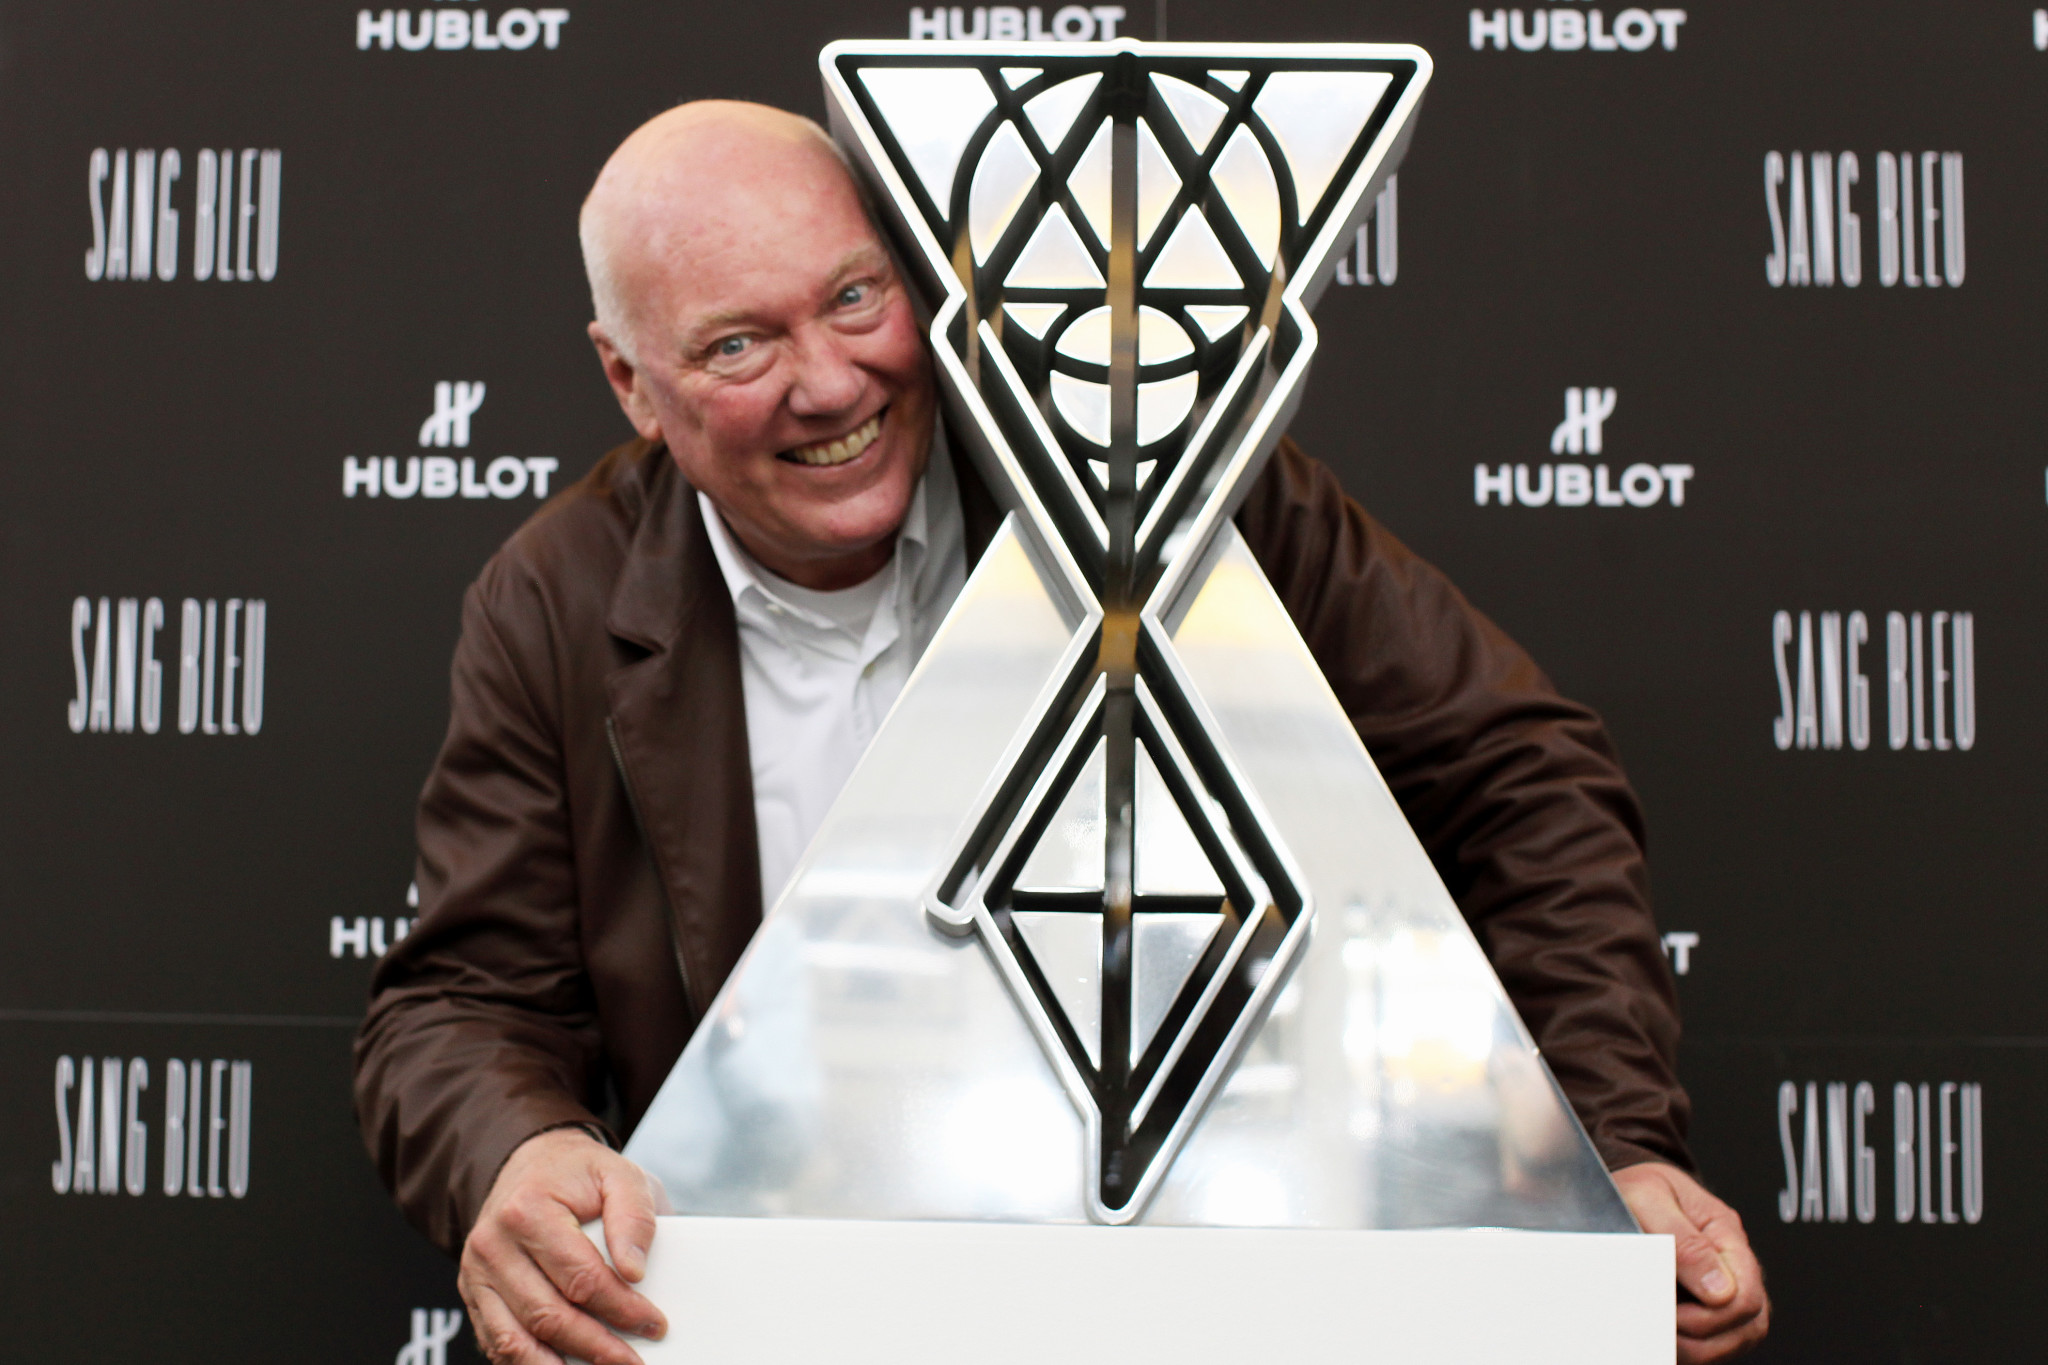 Jean-Claude Biver and the surprising and audacious glass and metal sculpture created by Sang Bleu